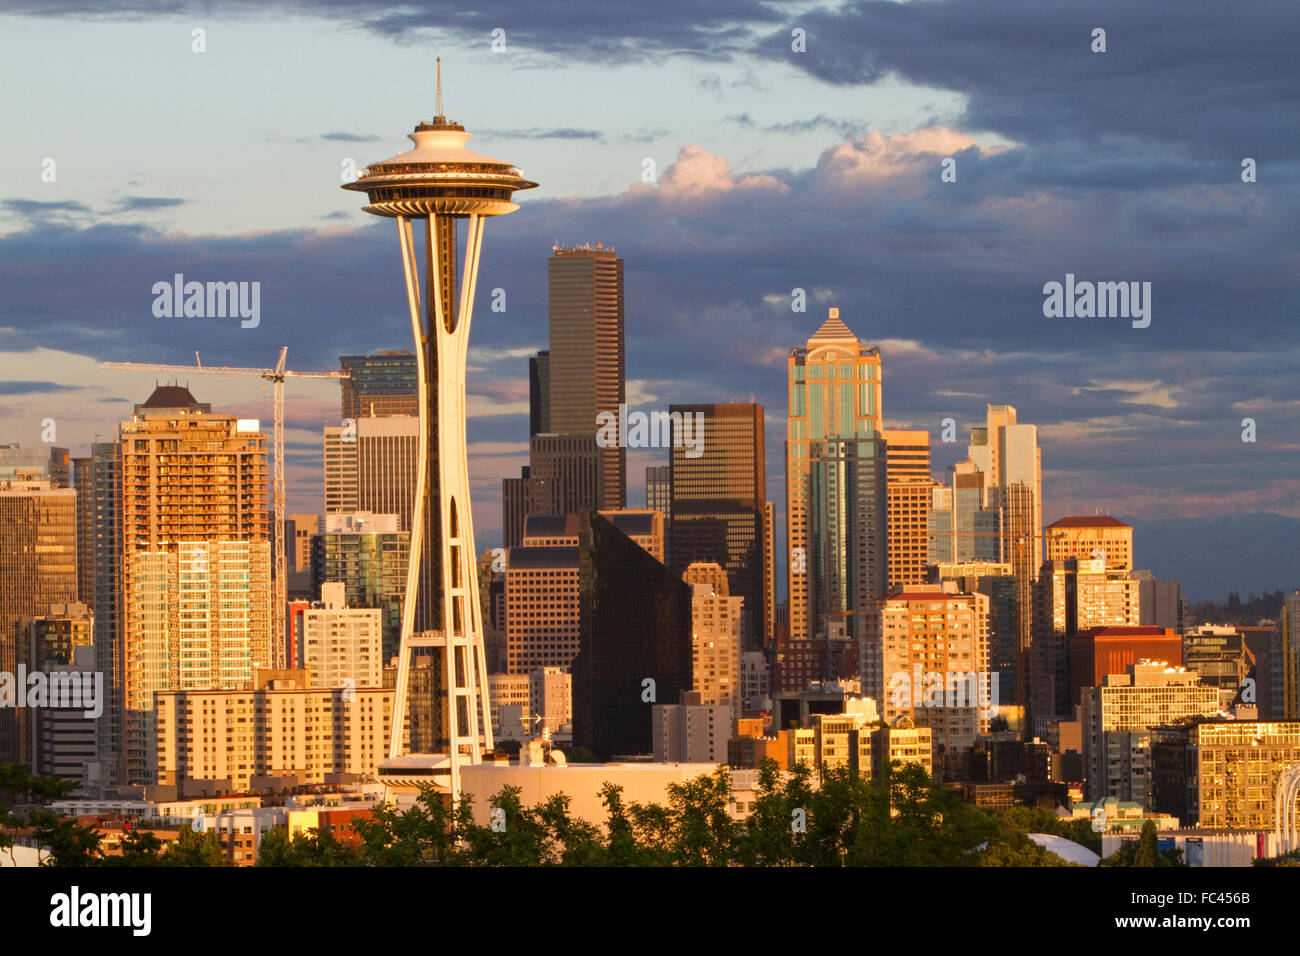 Seattle city scape at sunset with Space Needle, Washington, USA. - Stock Image